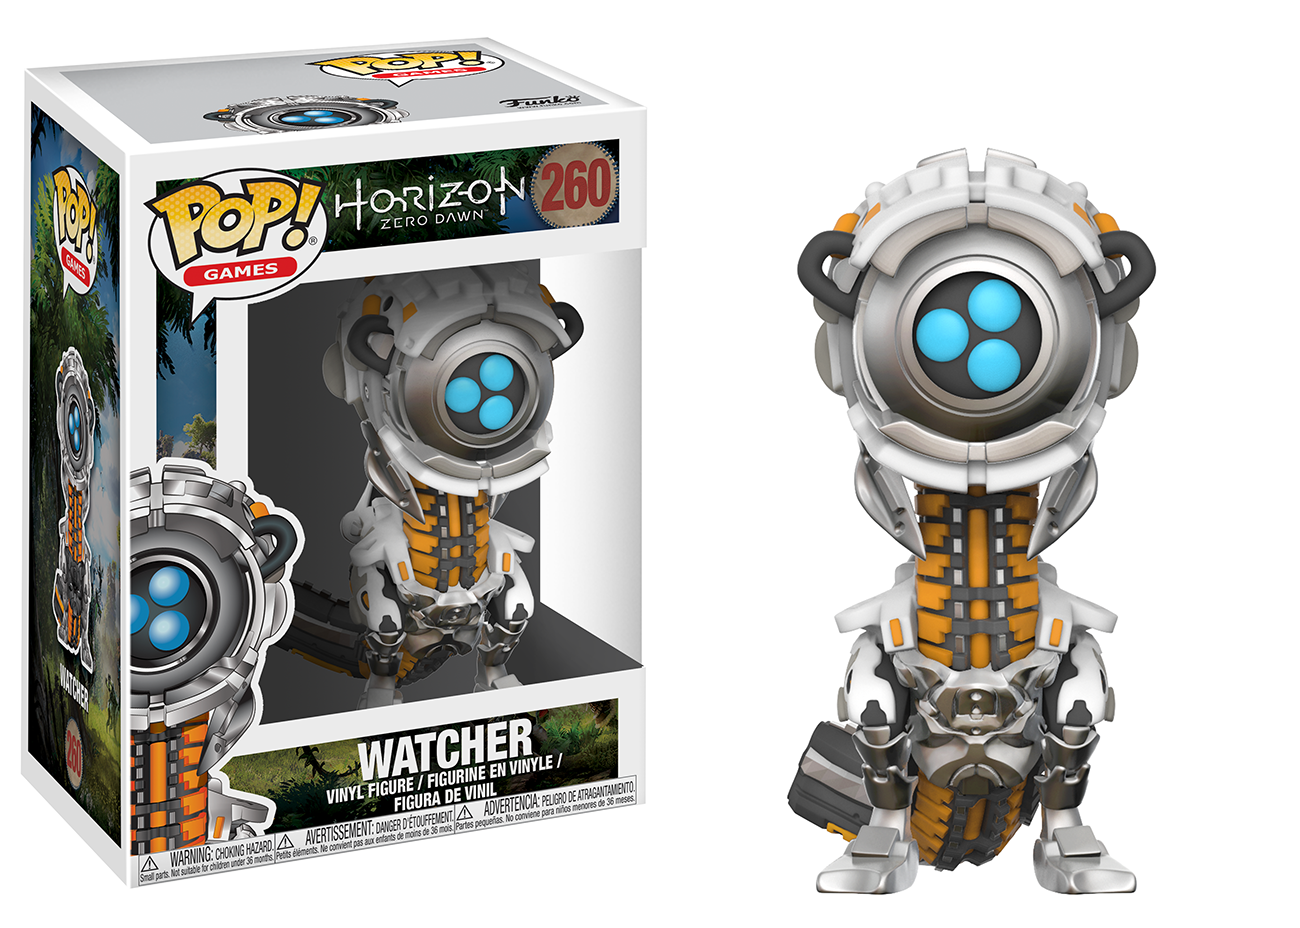 Фигура Funko Pop! Games: Horizon Zero Dawn - Watcher, #260 - 2